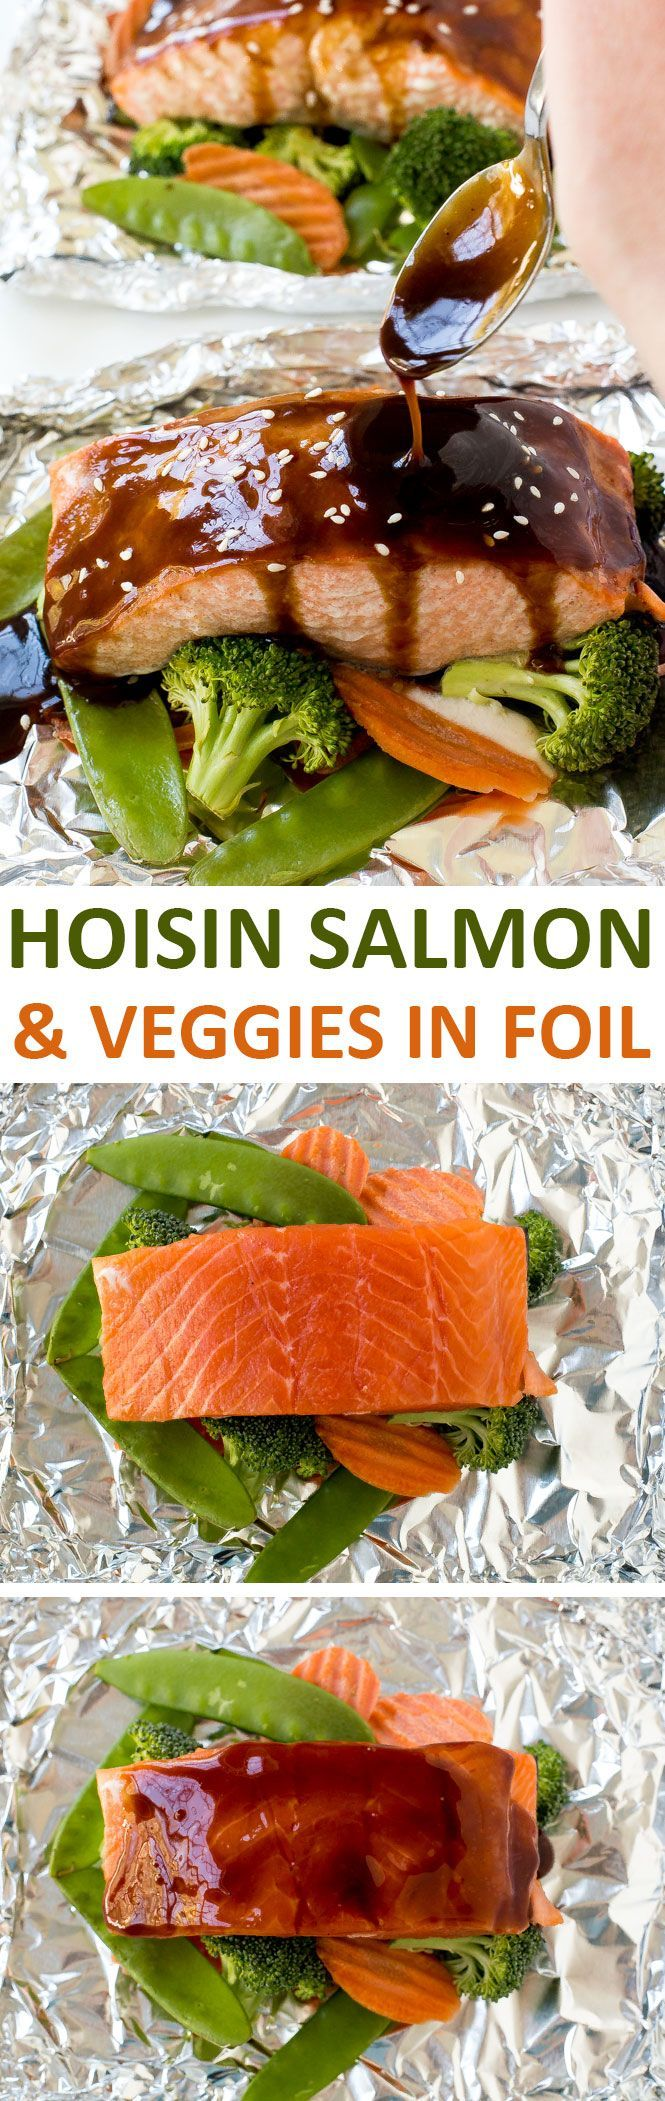 Hoisin Glazed Salmon and Veggies in foil baked to perfection and drizzled with an amazing 3 ingredient hoisin sauce! | chefsavvy.com